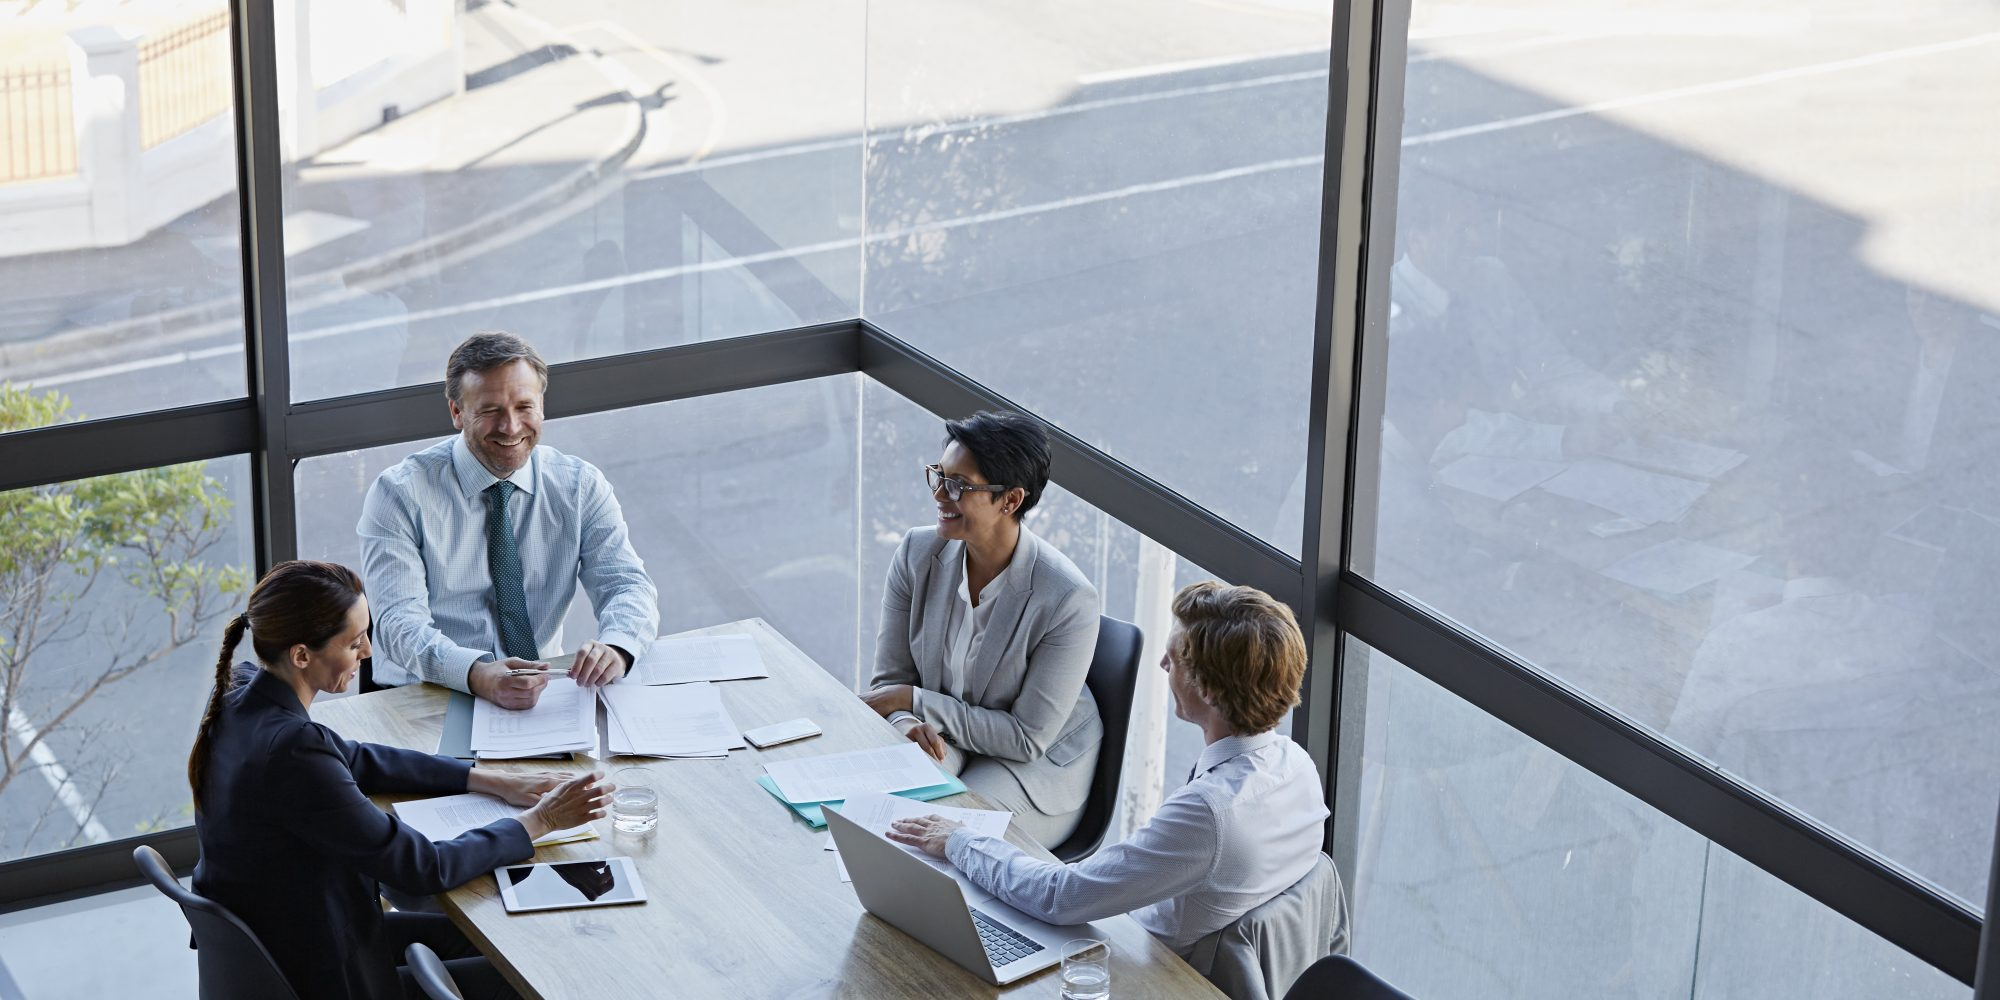 High angle view of smiling business people in meeting. Male and female professionals are sitting at conference table against window. They are working in office.